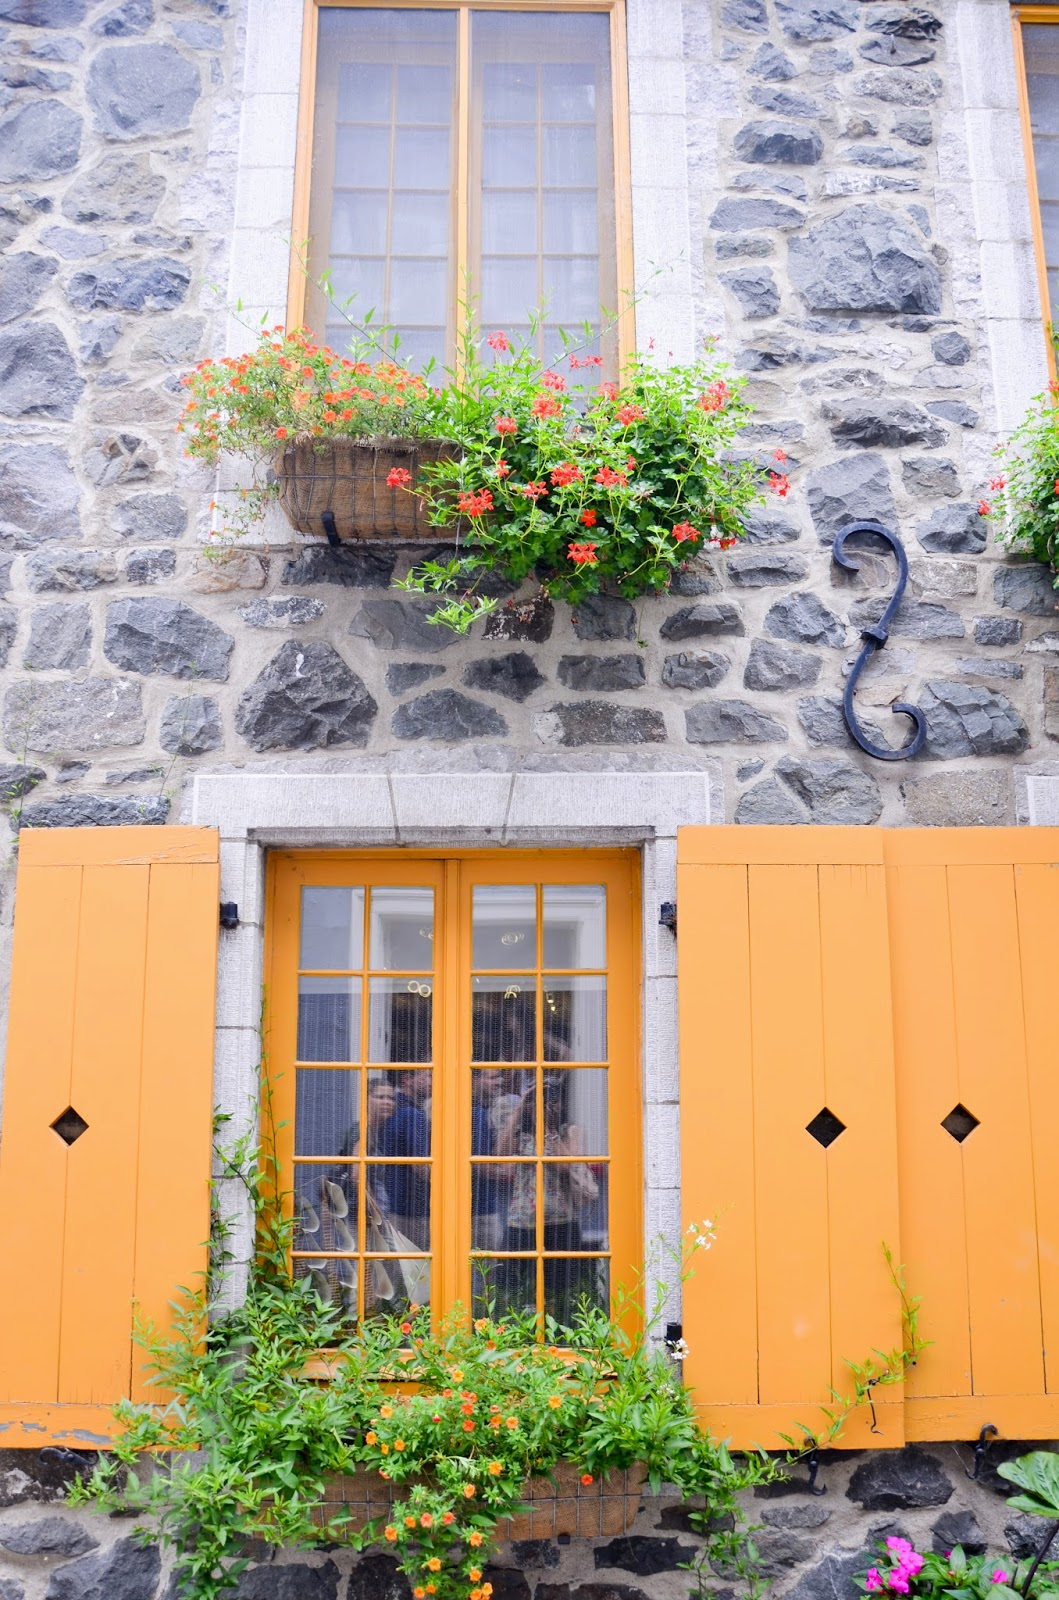 yellow windows and doors with flower baskets in Old Quebec, quebec city, canada summer travel